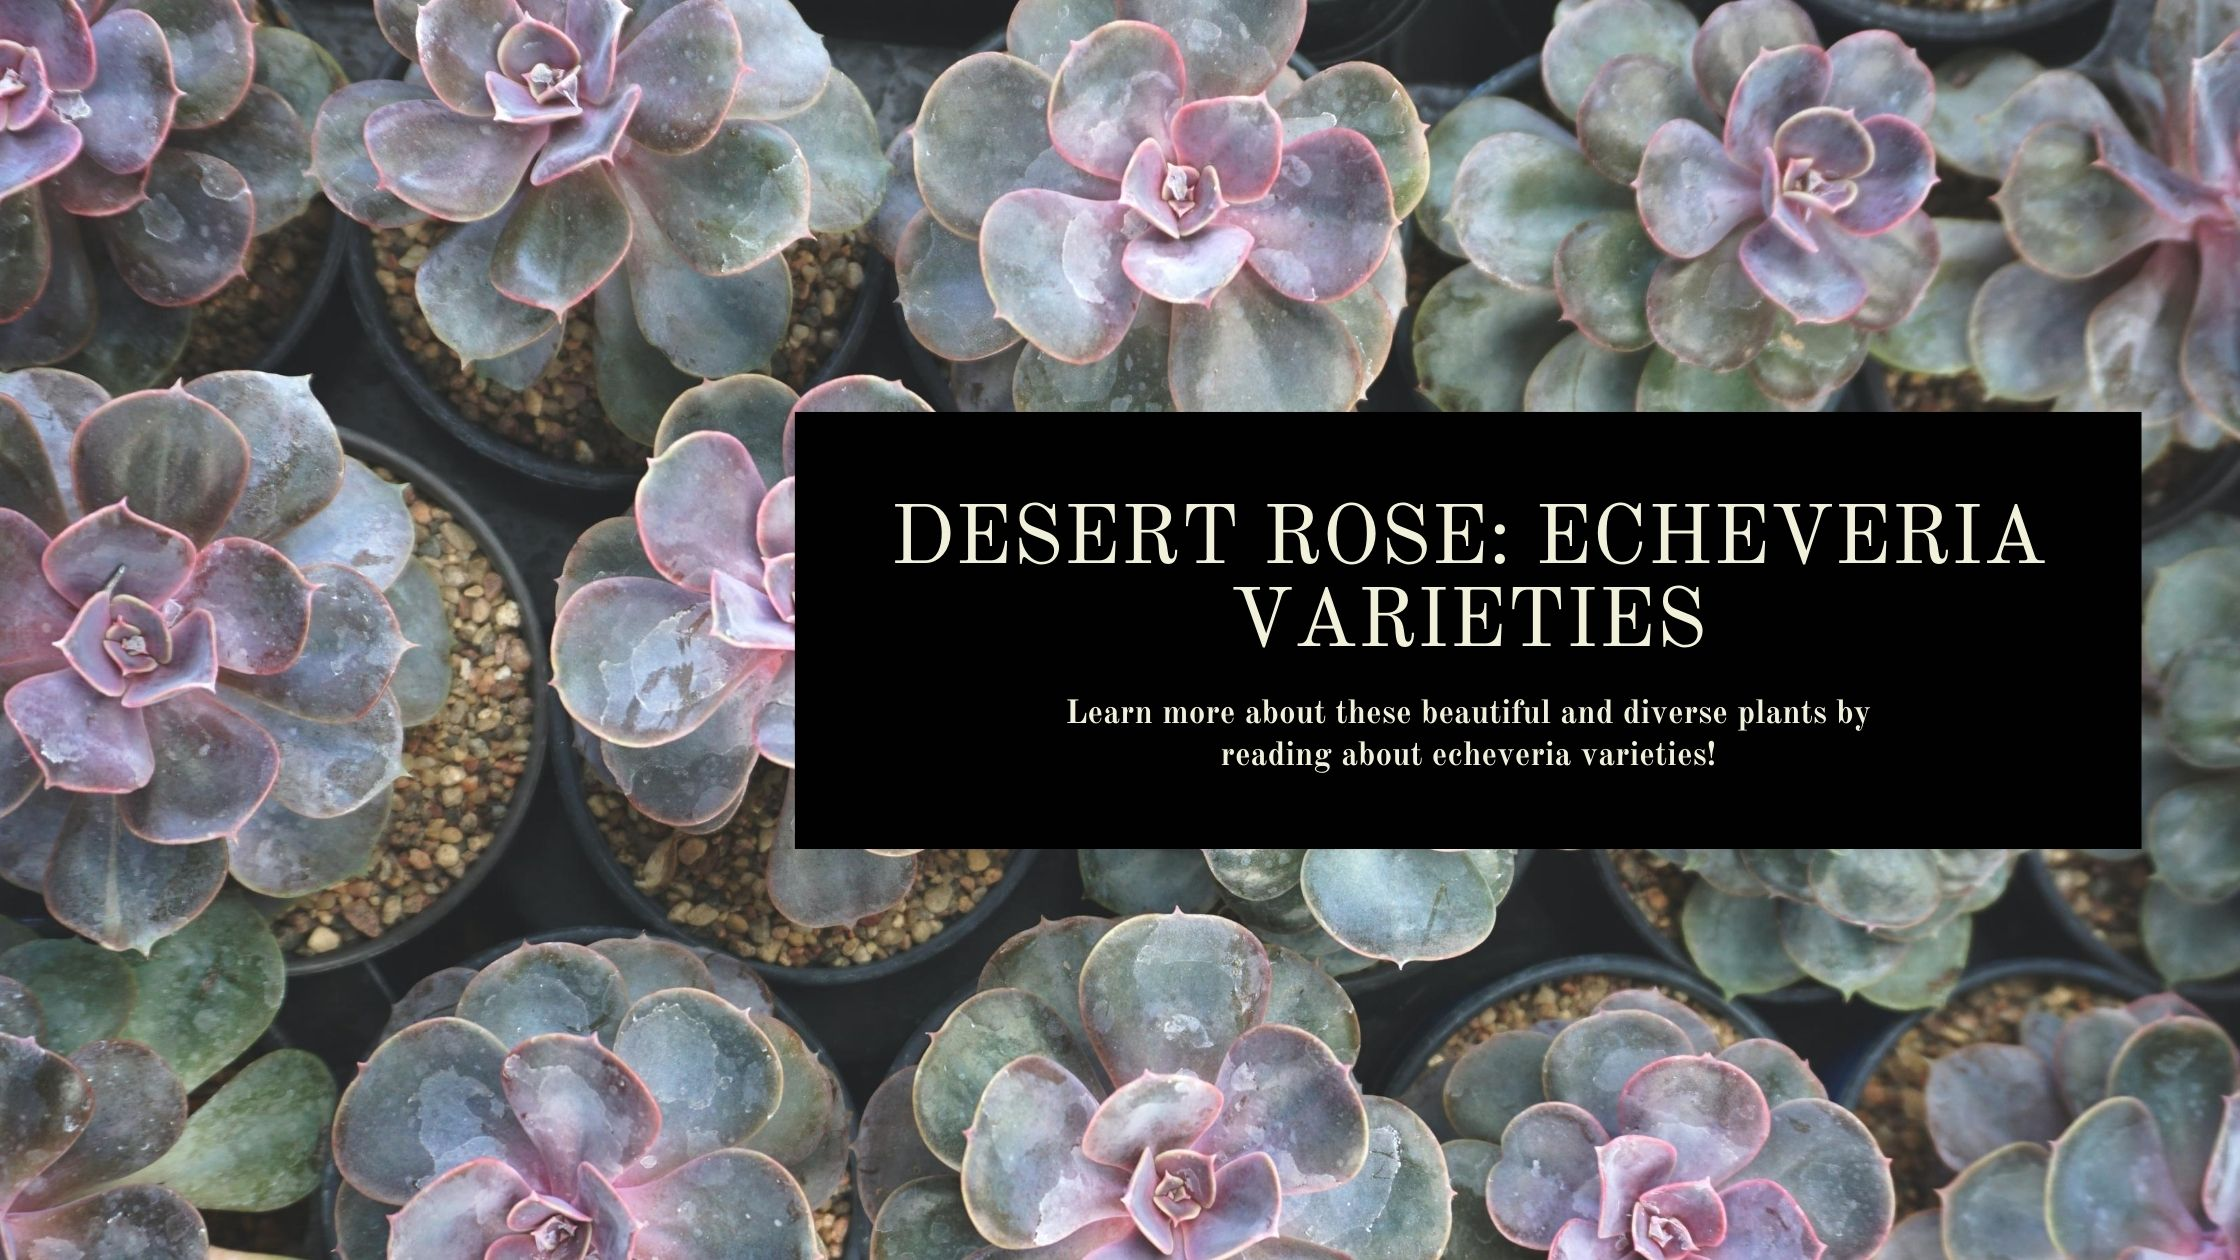 Echeveria Varieties